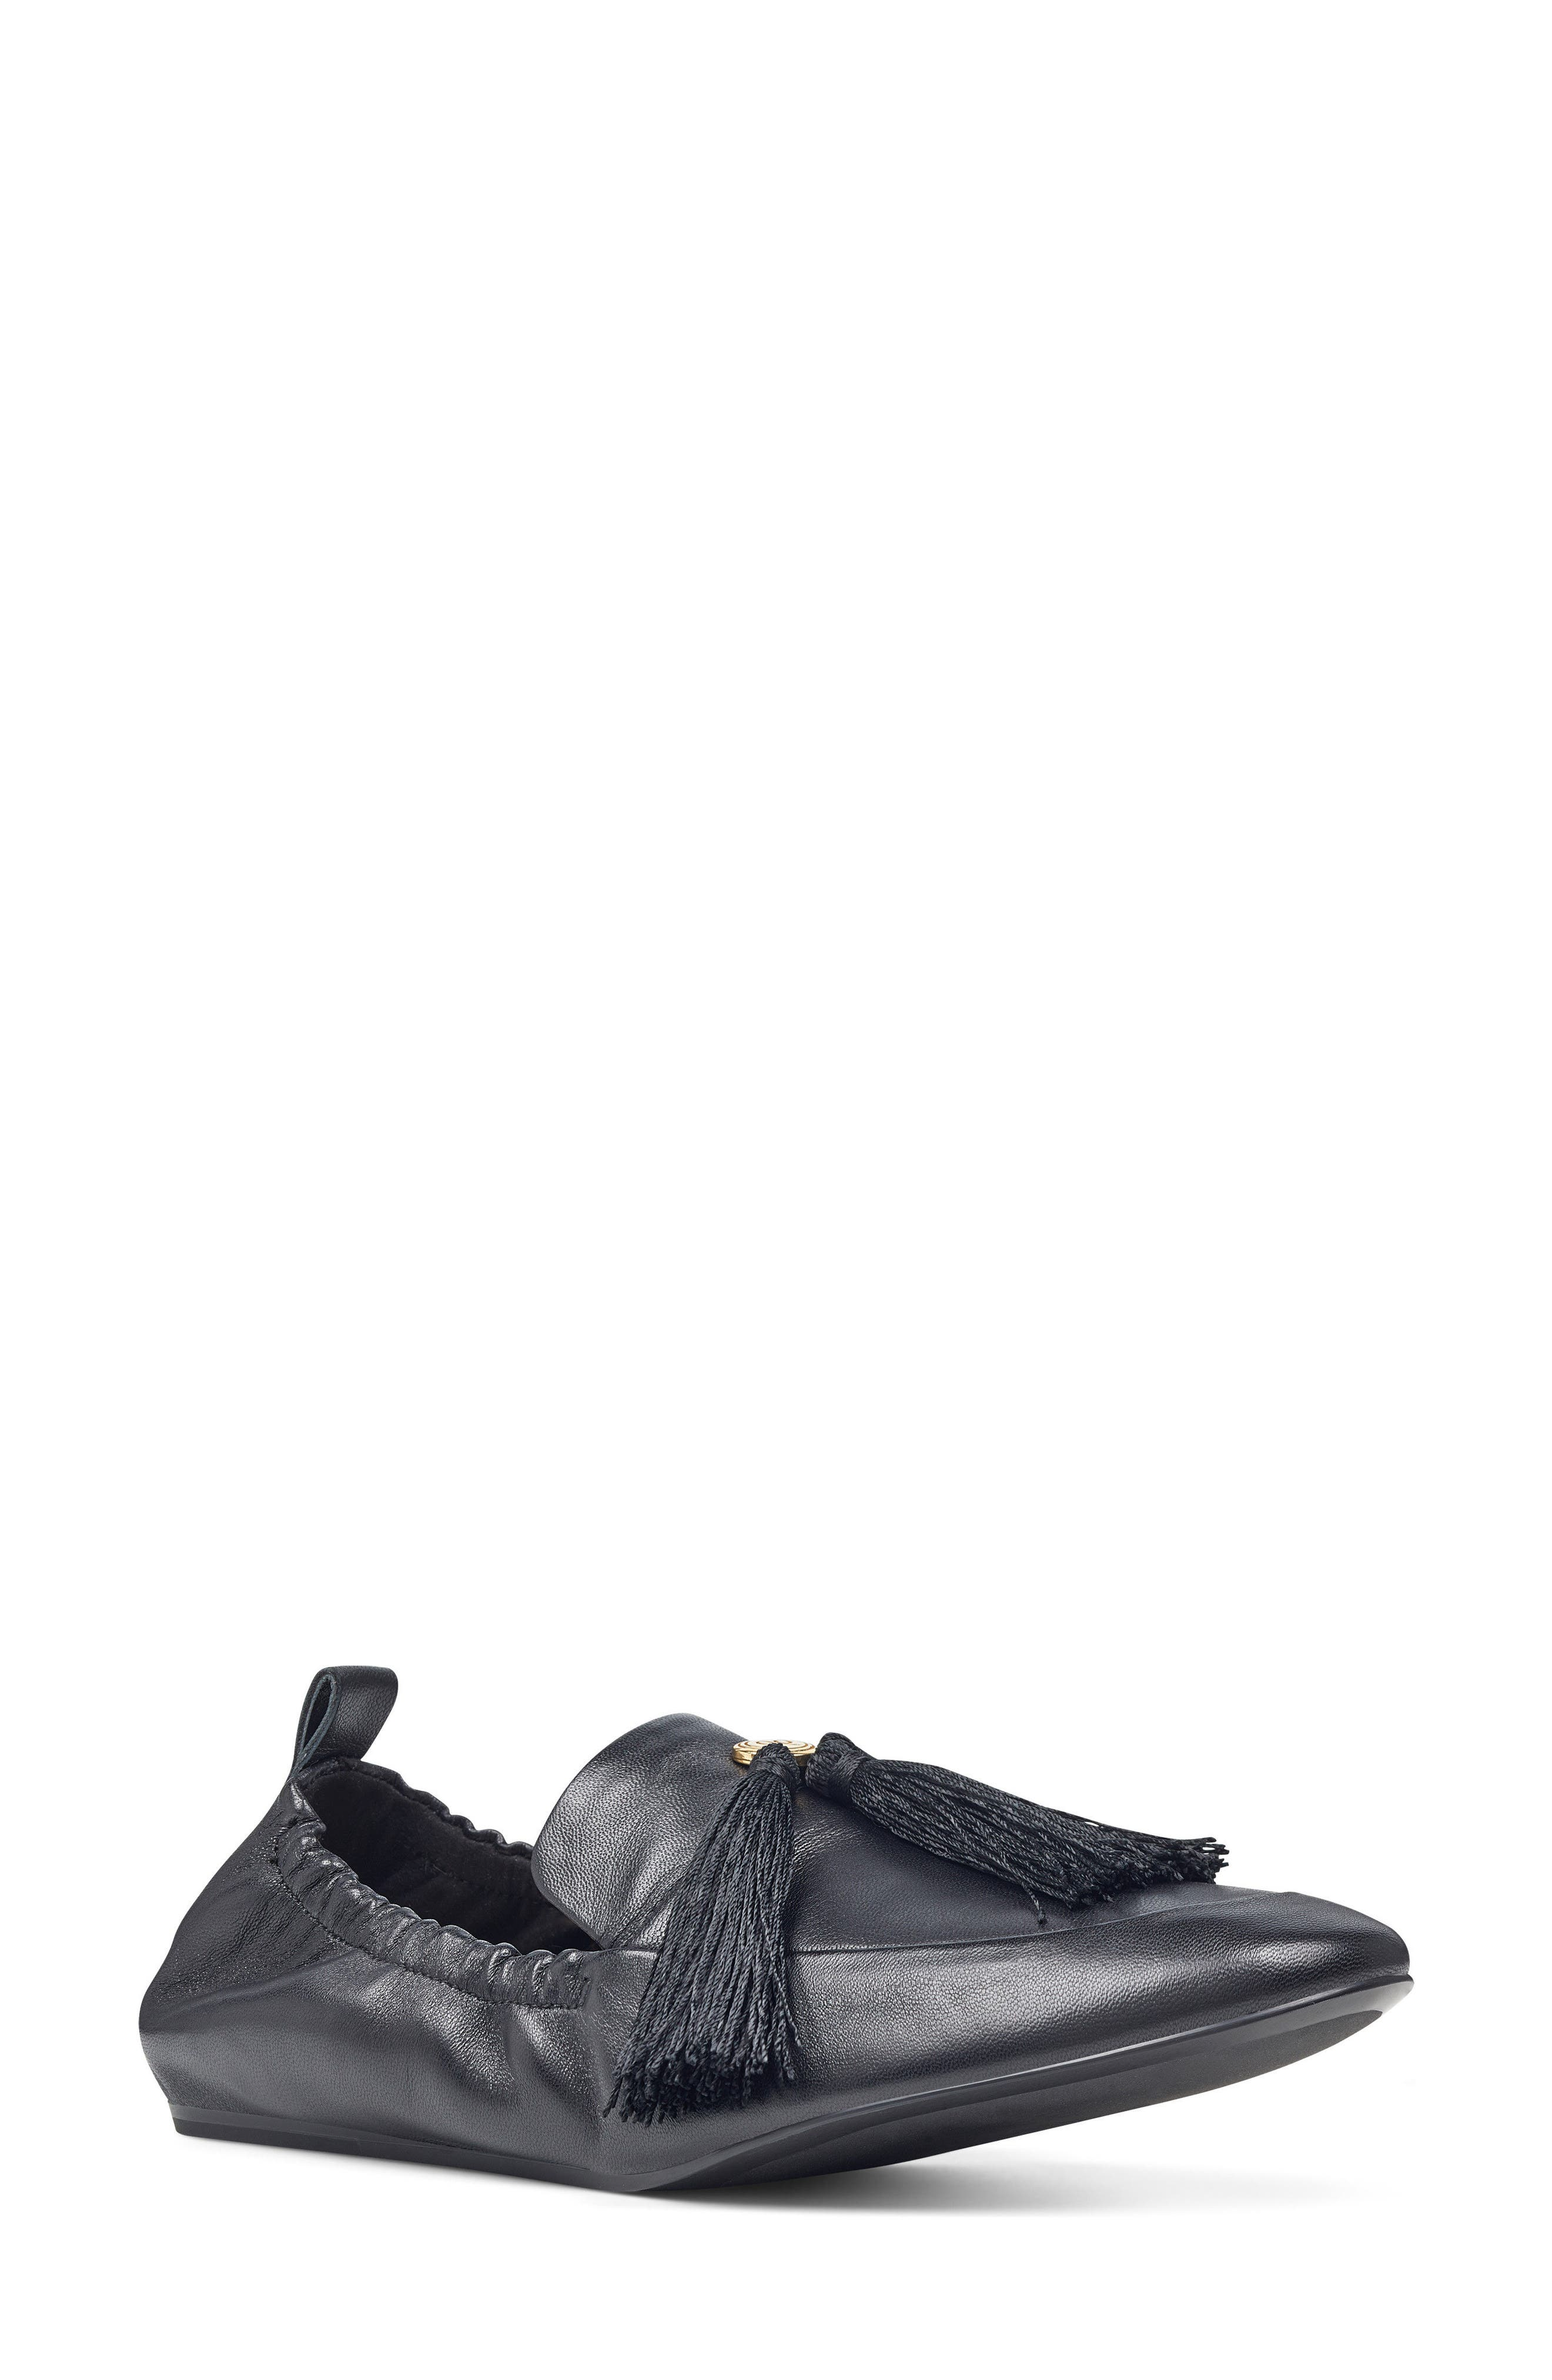 NINE WEST Ballard Tassel Loafer Flat